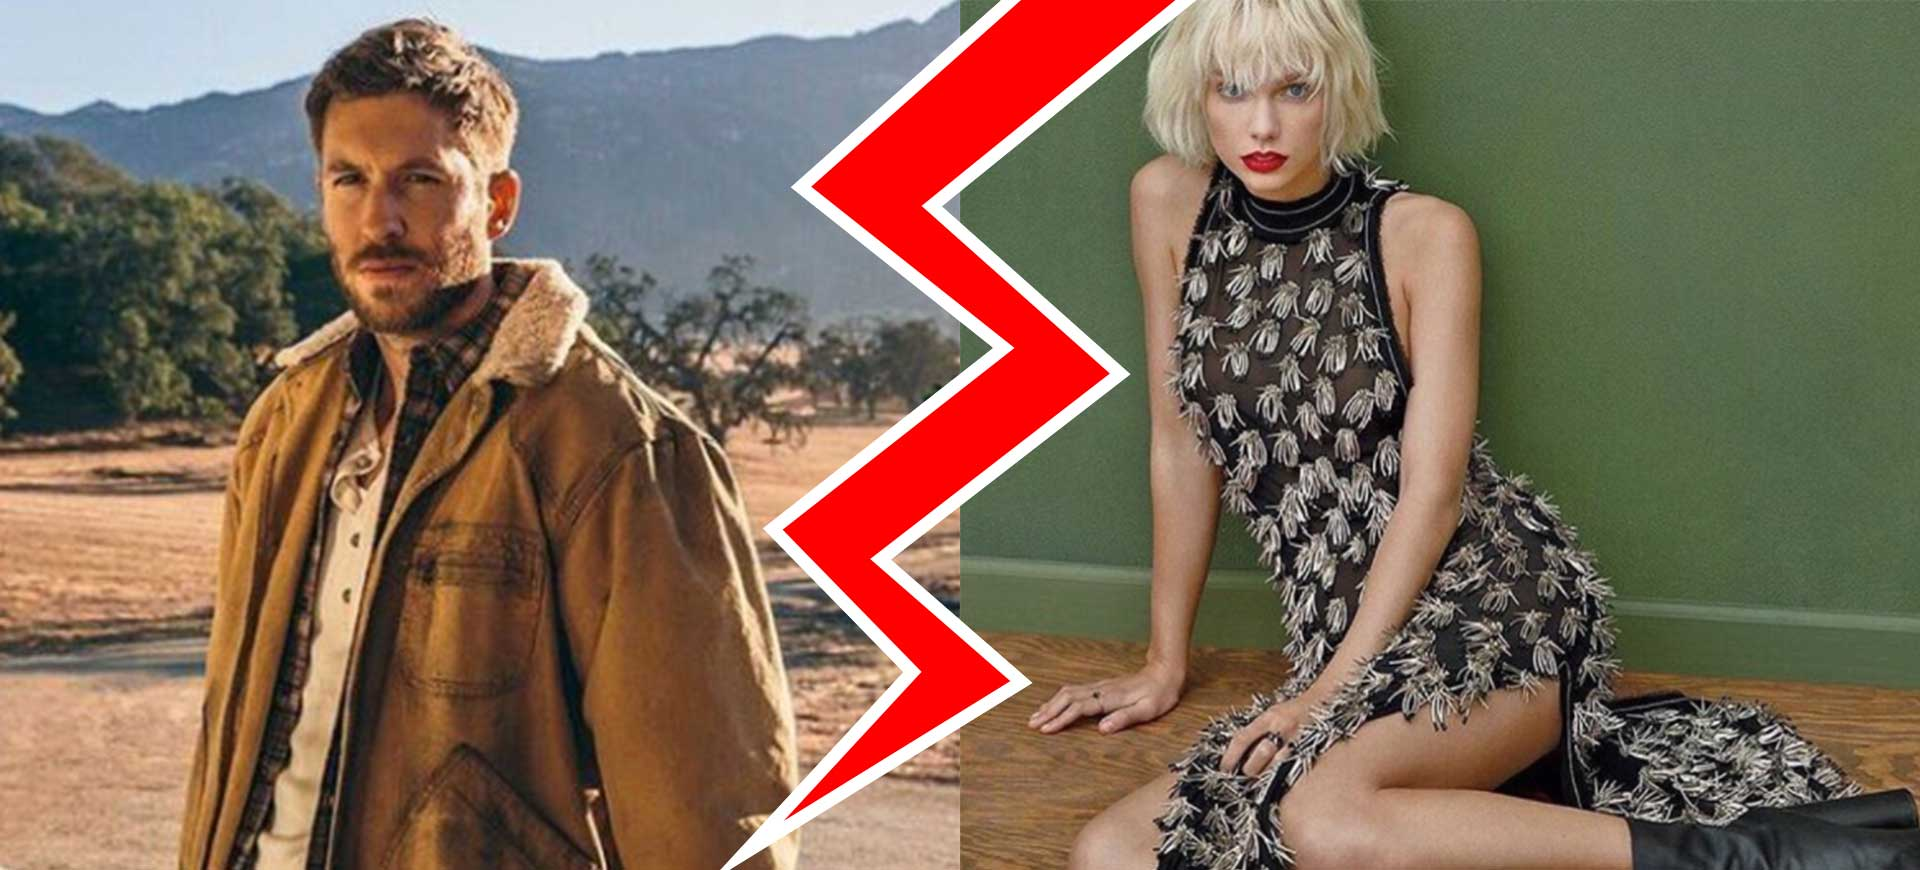 taylor swift vs calvin harris